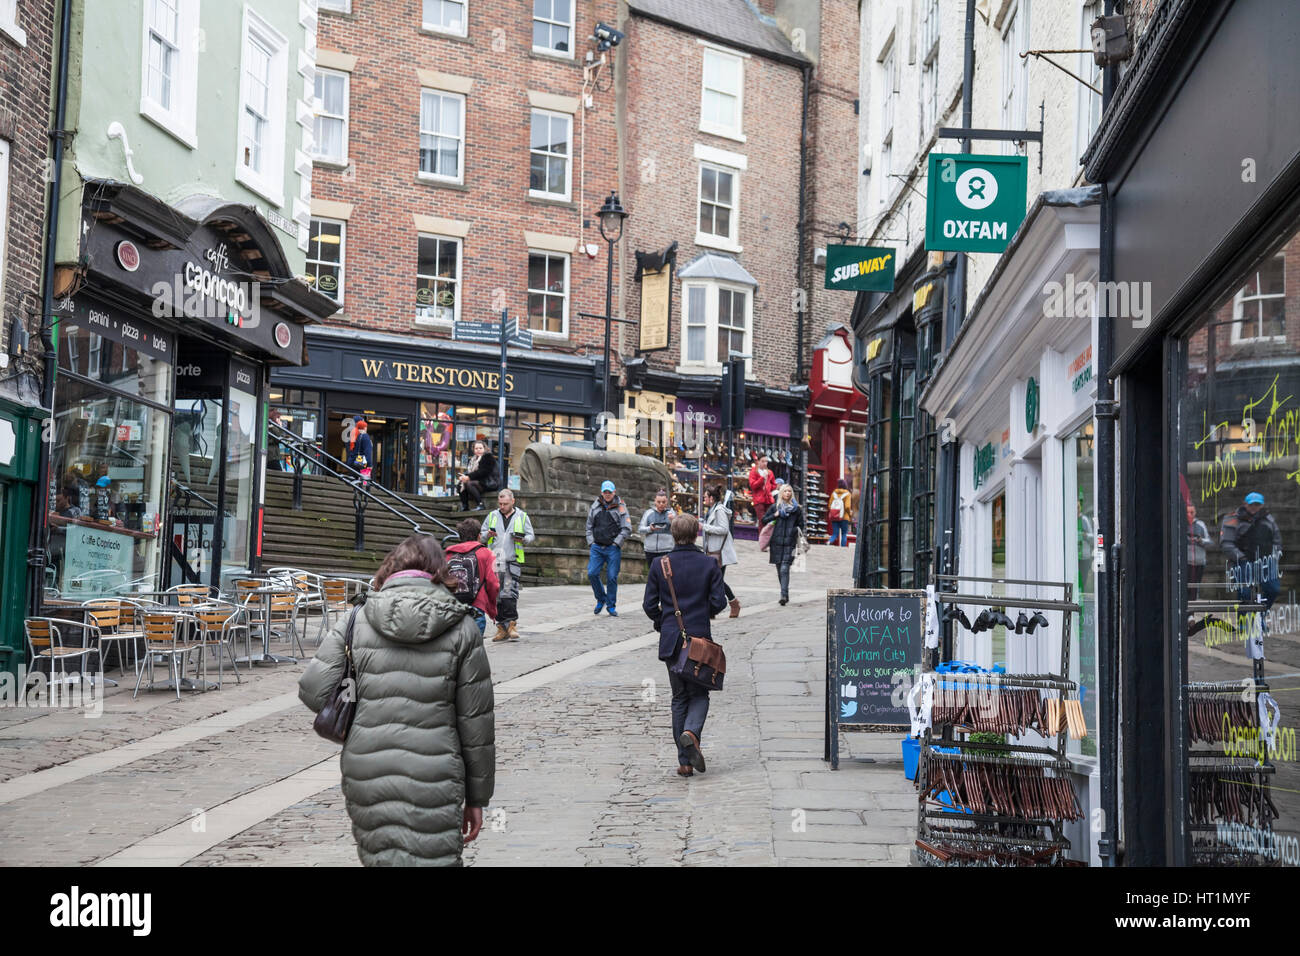 Shoppers And Tourists Walking Through Old Elvet Street In Durham